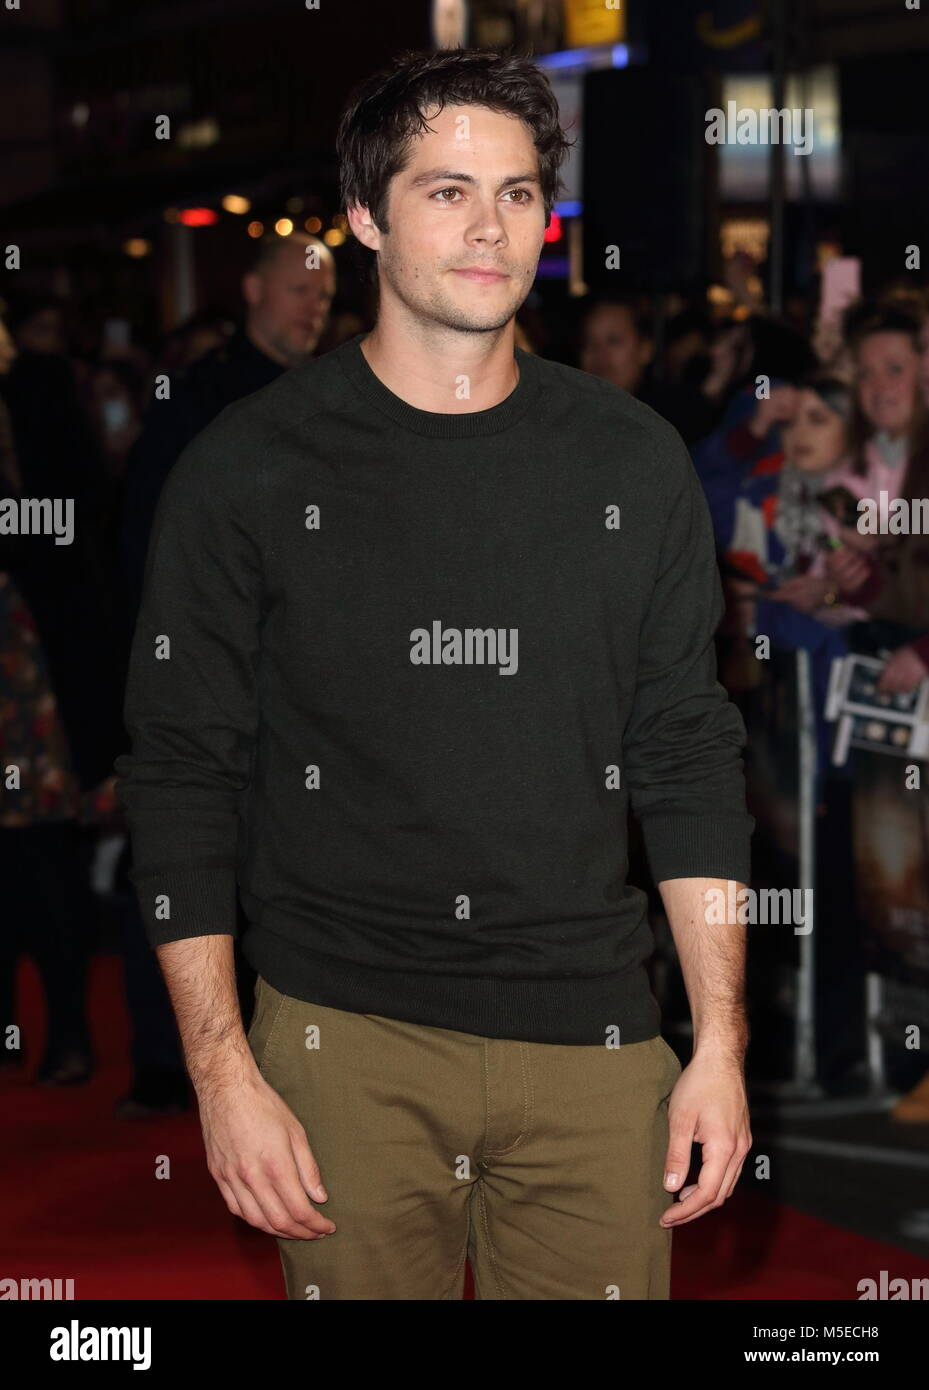 Maze Runner: The Death Cure UK Fan Screening at Vue West End in Leicester Square - Arrivals  Featuring: Dylan O'Brien - Stock Image